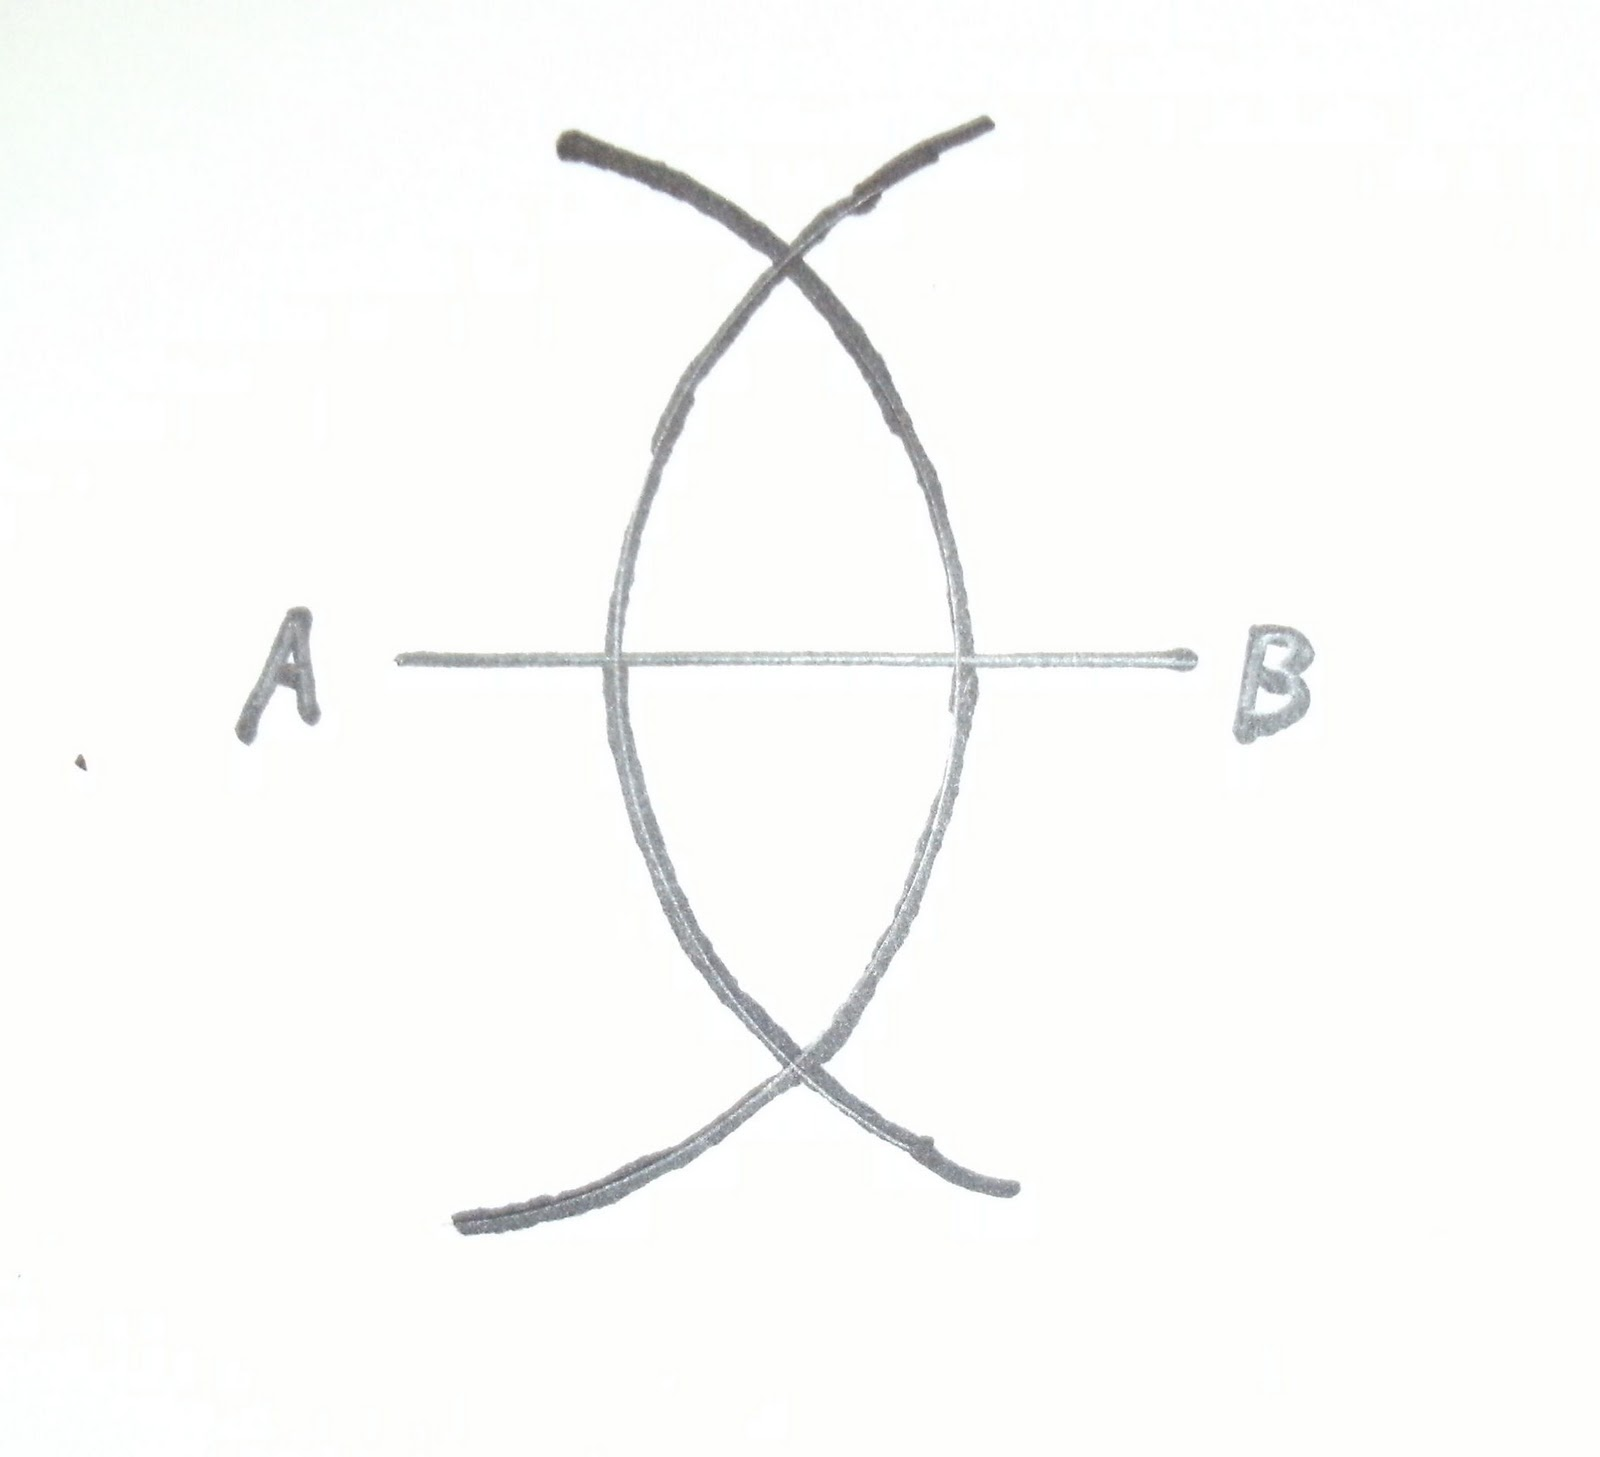 Drawing Perpendicular Lines With A Compass : Rocky meets euclid or how to bisect a line segment